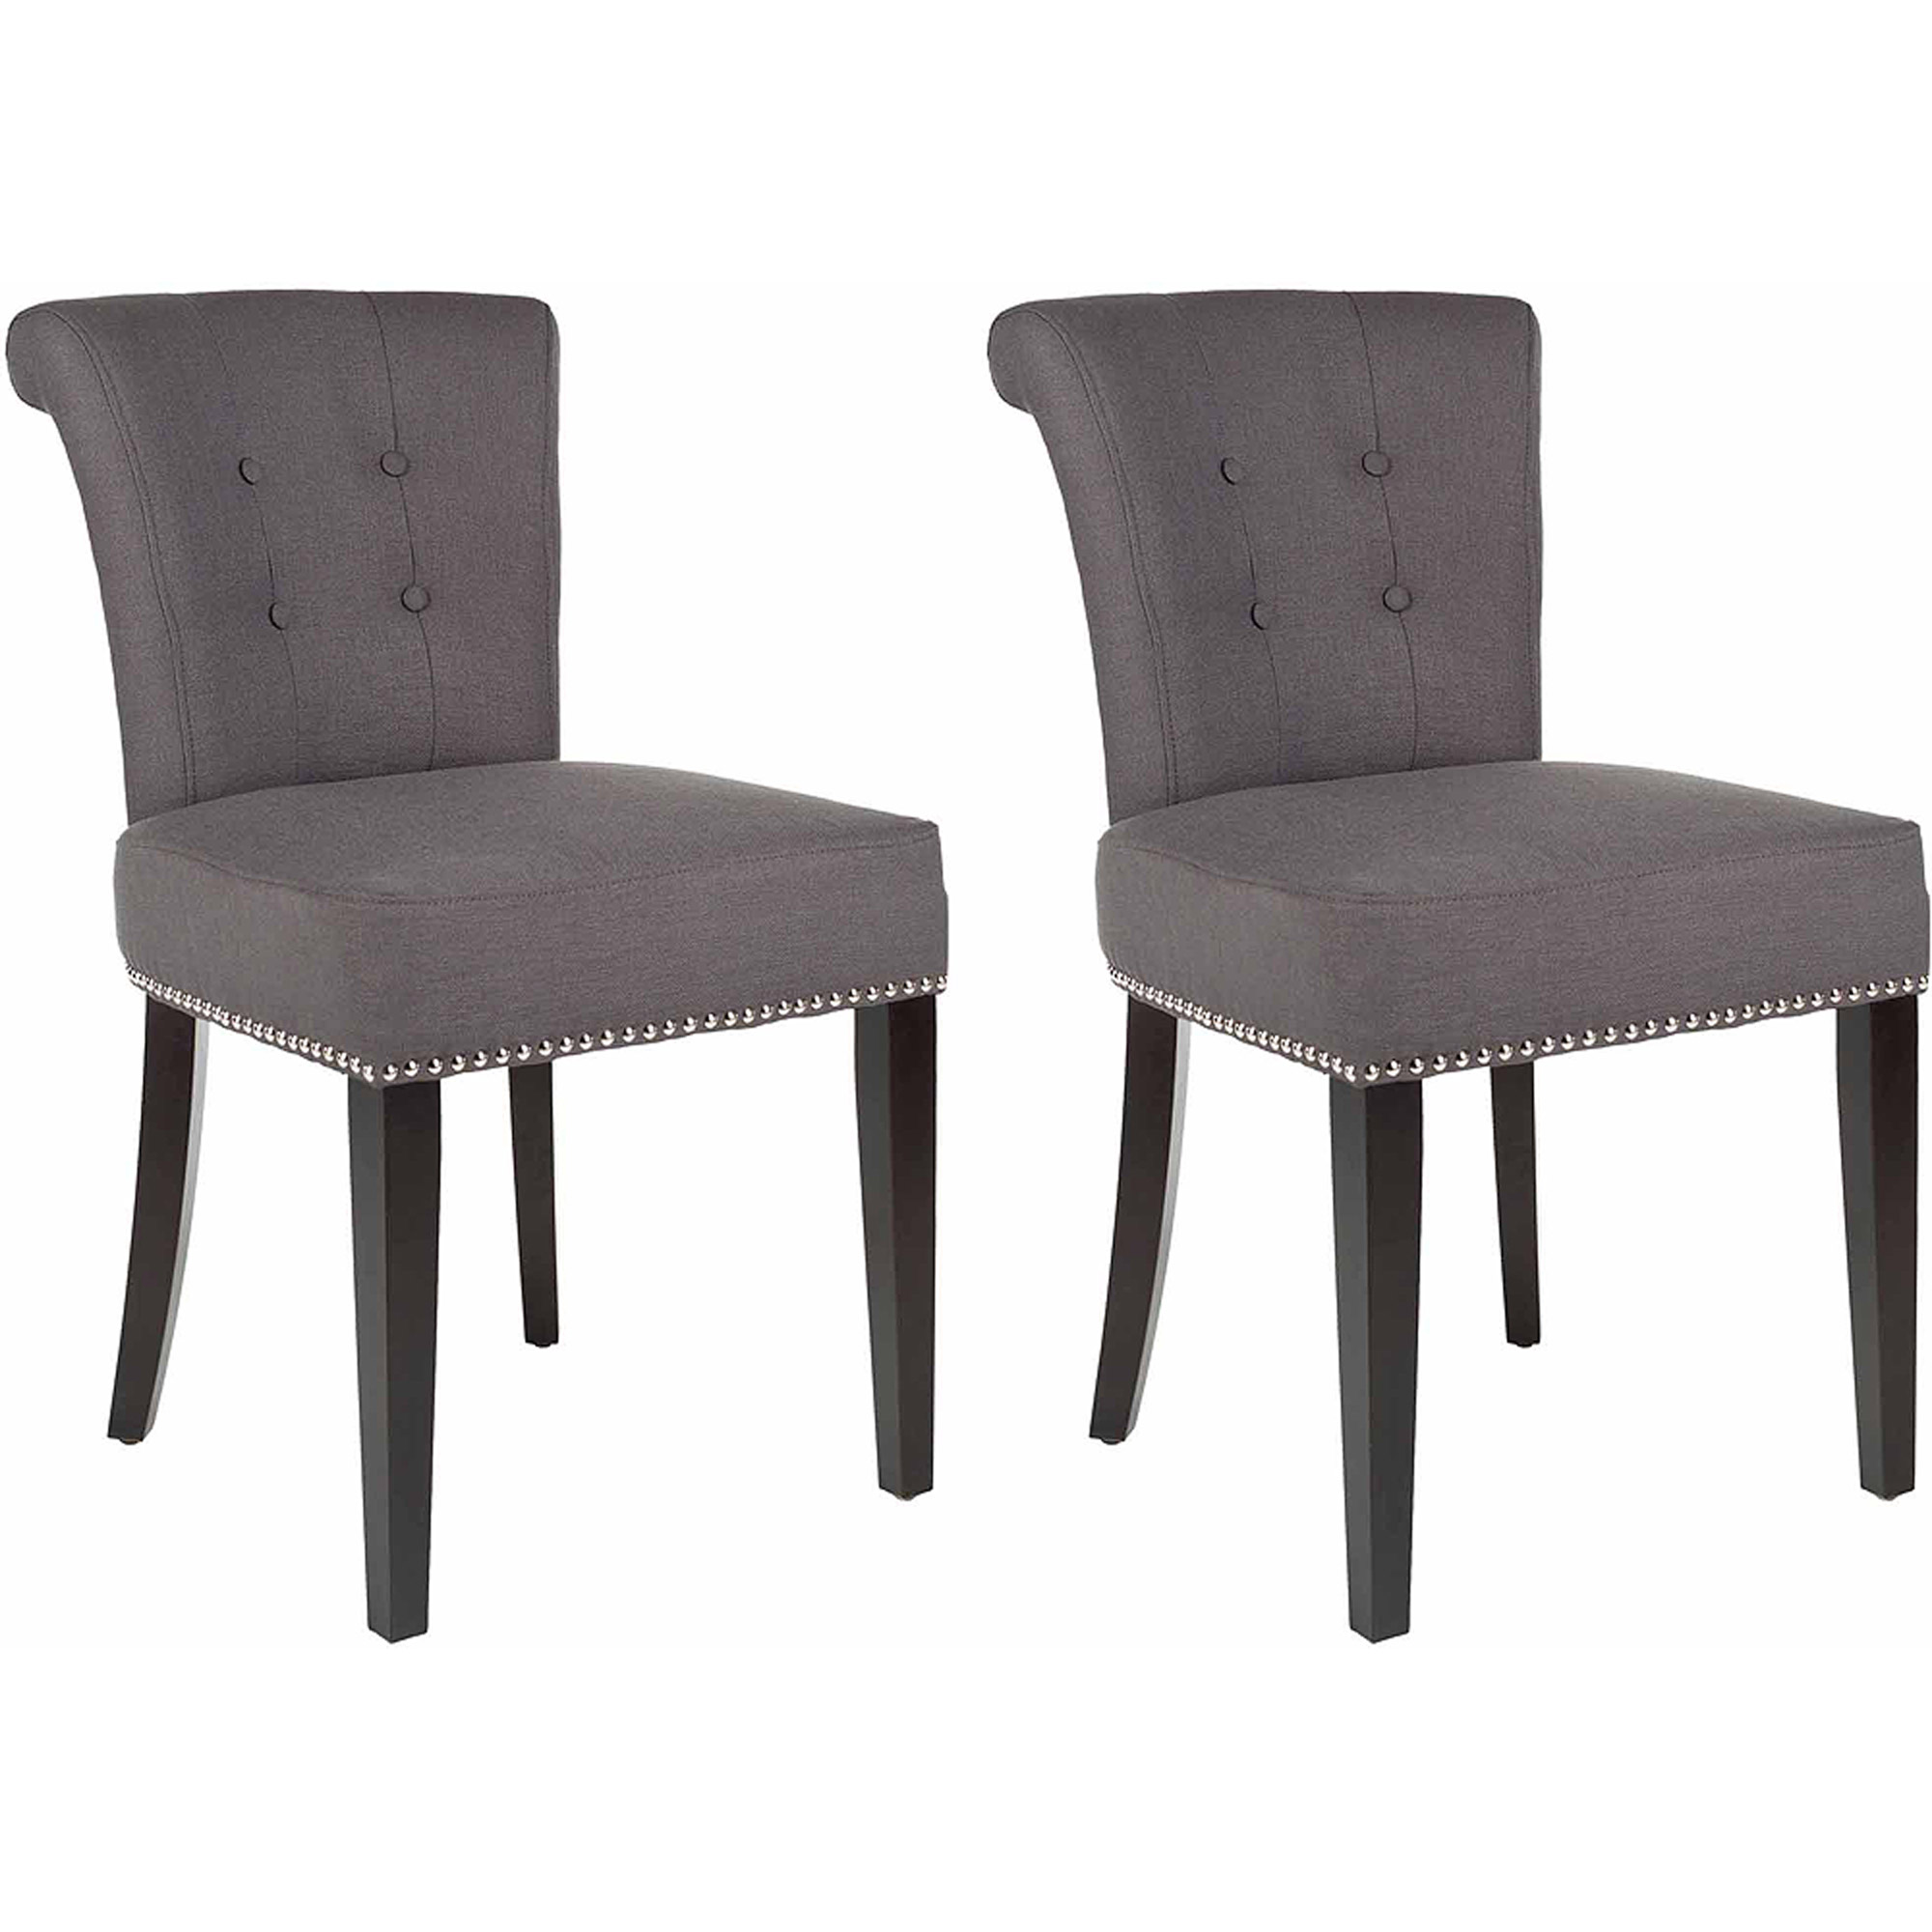 "Safavieh Sinclair 21""H Ring Chair Set 2 Silver Nail Heads"